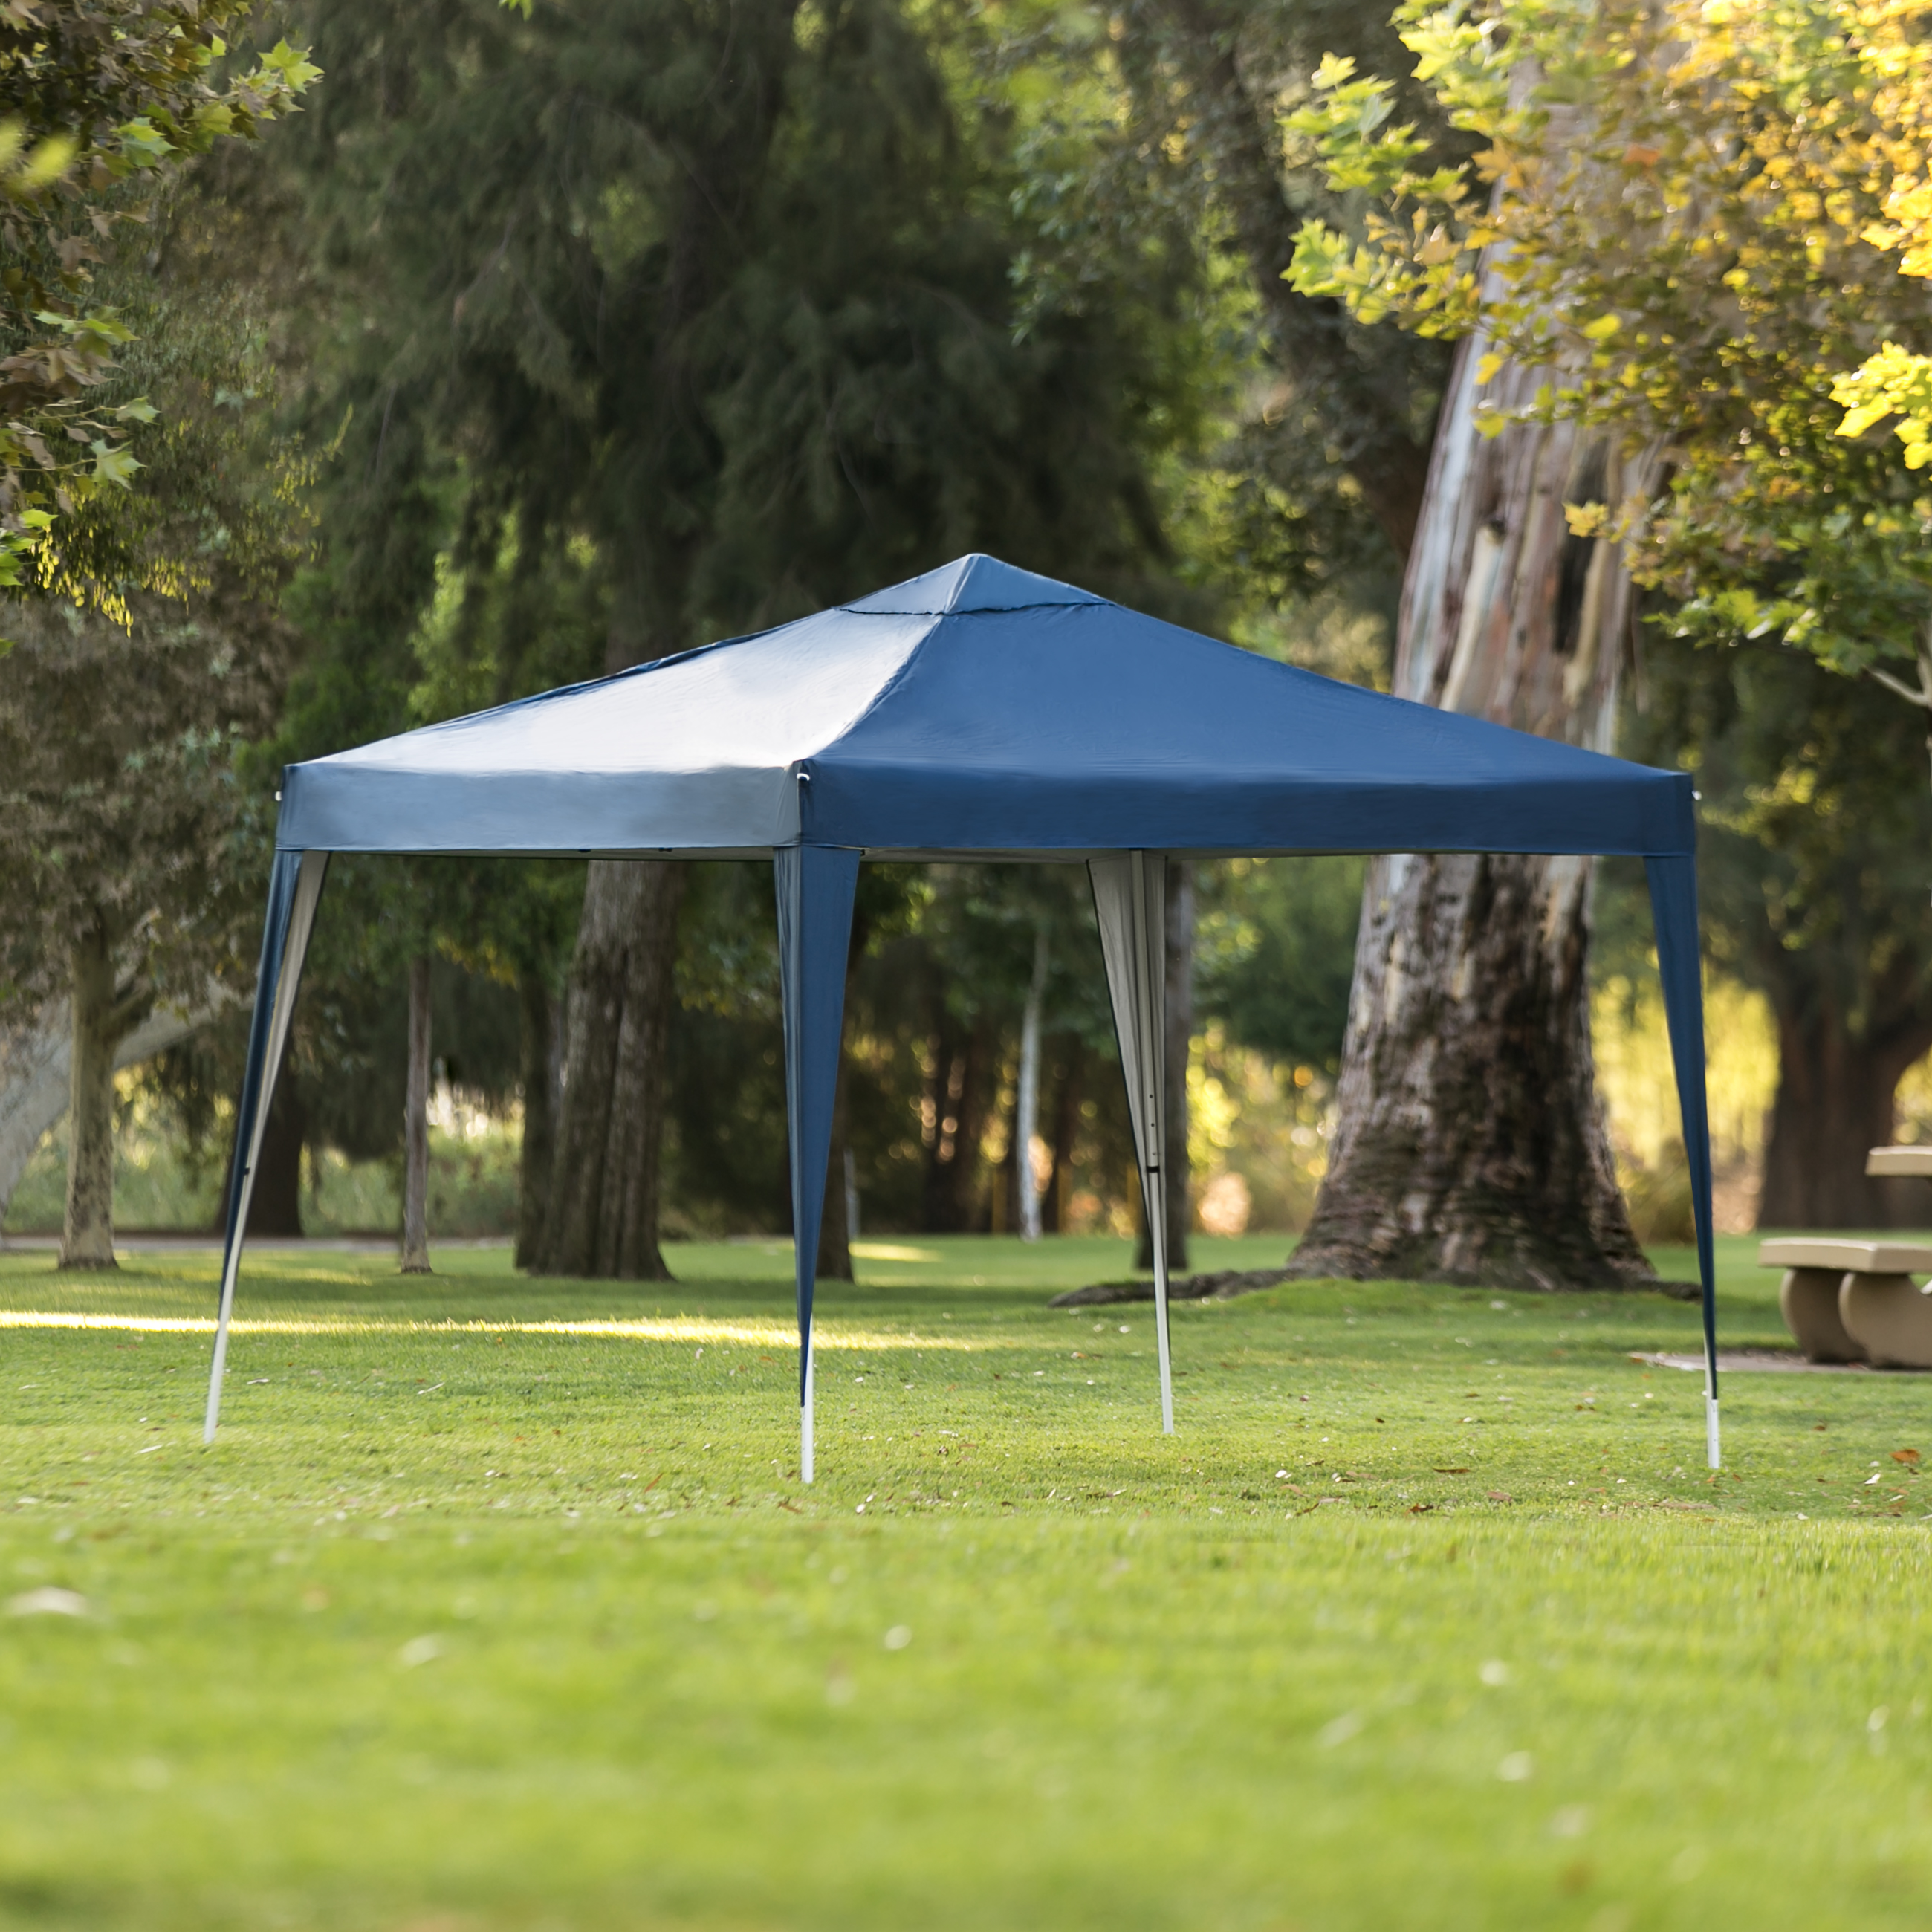 Best Choice Products 10x10ft Outdoor Portable Lightweight Folding Instant Pop Up Gazebo Canopy Shade Tent w & Pop-up Tents